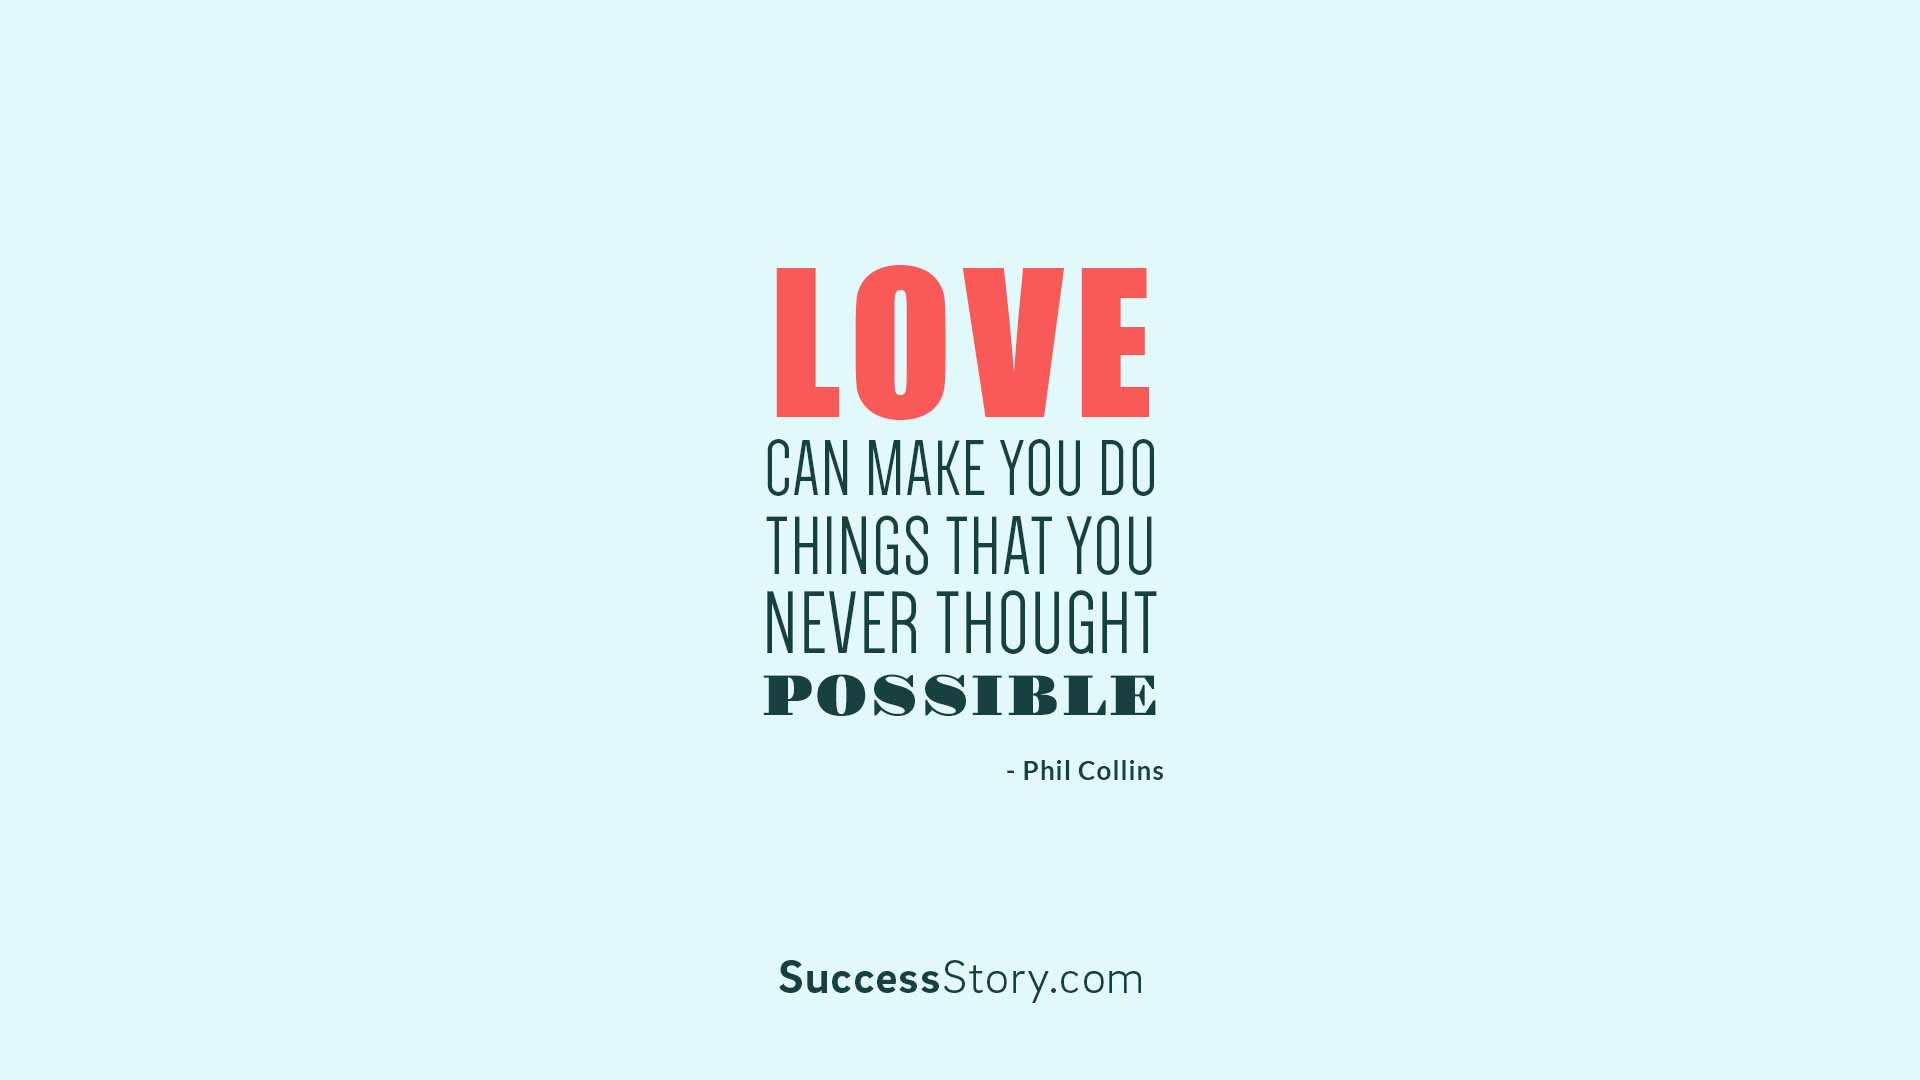 Love can make you d